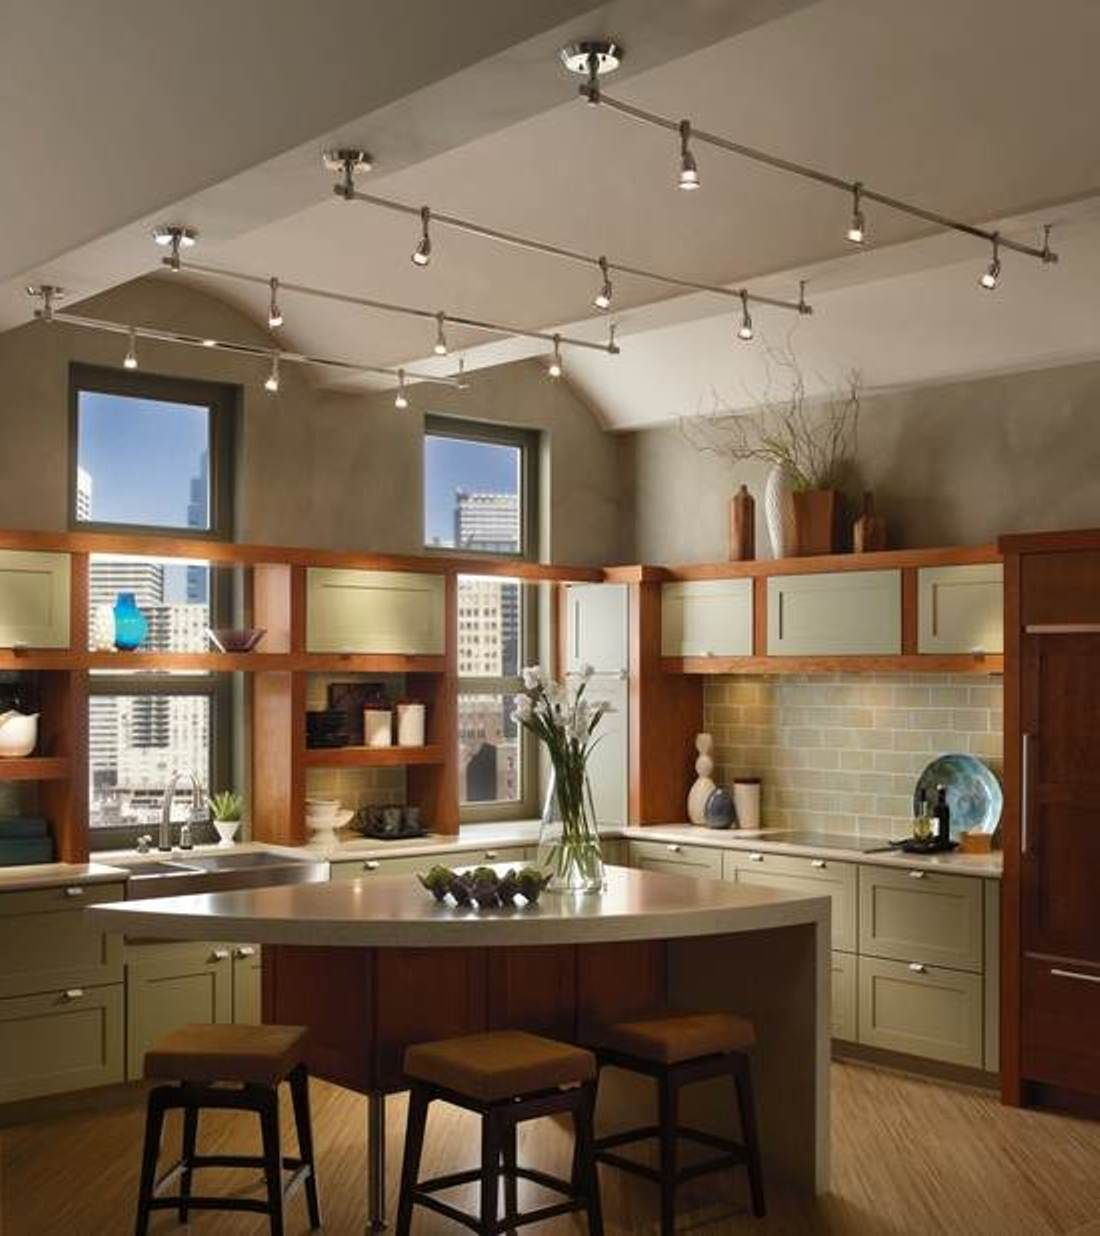 Overhead Kitchen Lighting Ideas: Best 25+ Kitchen Track Lighting Ideas On Pinterest